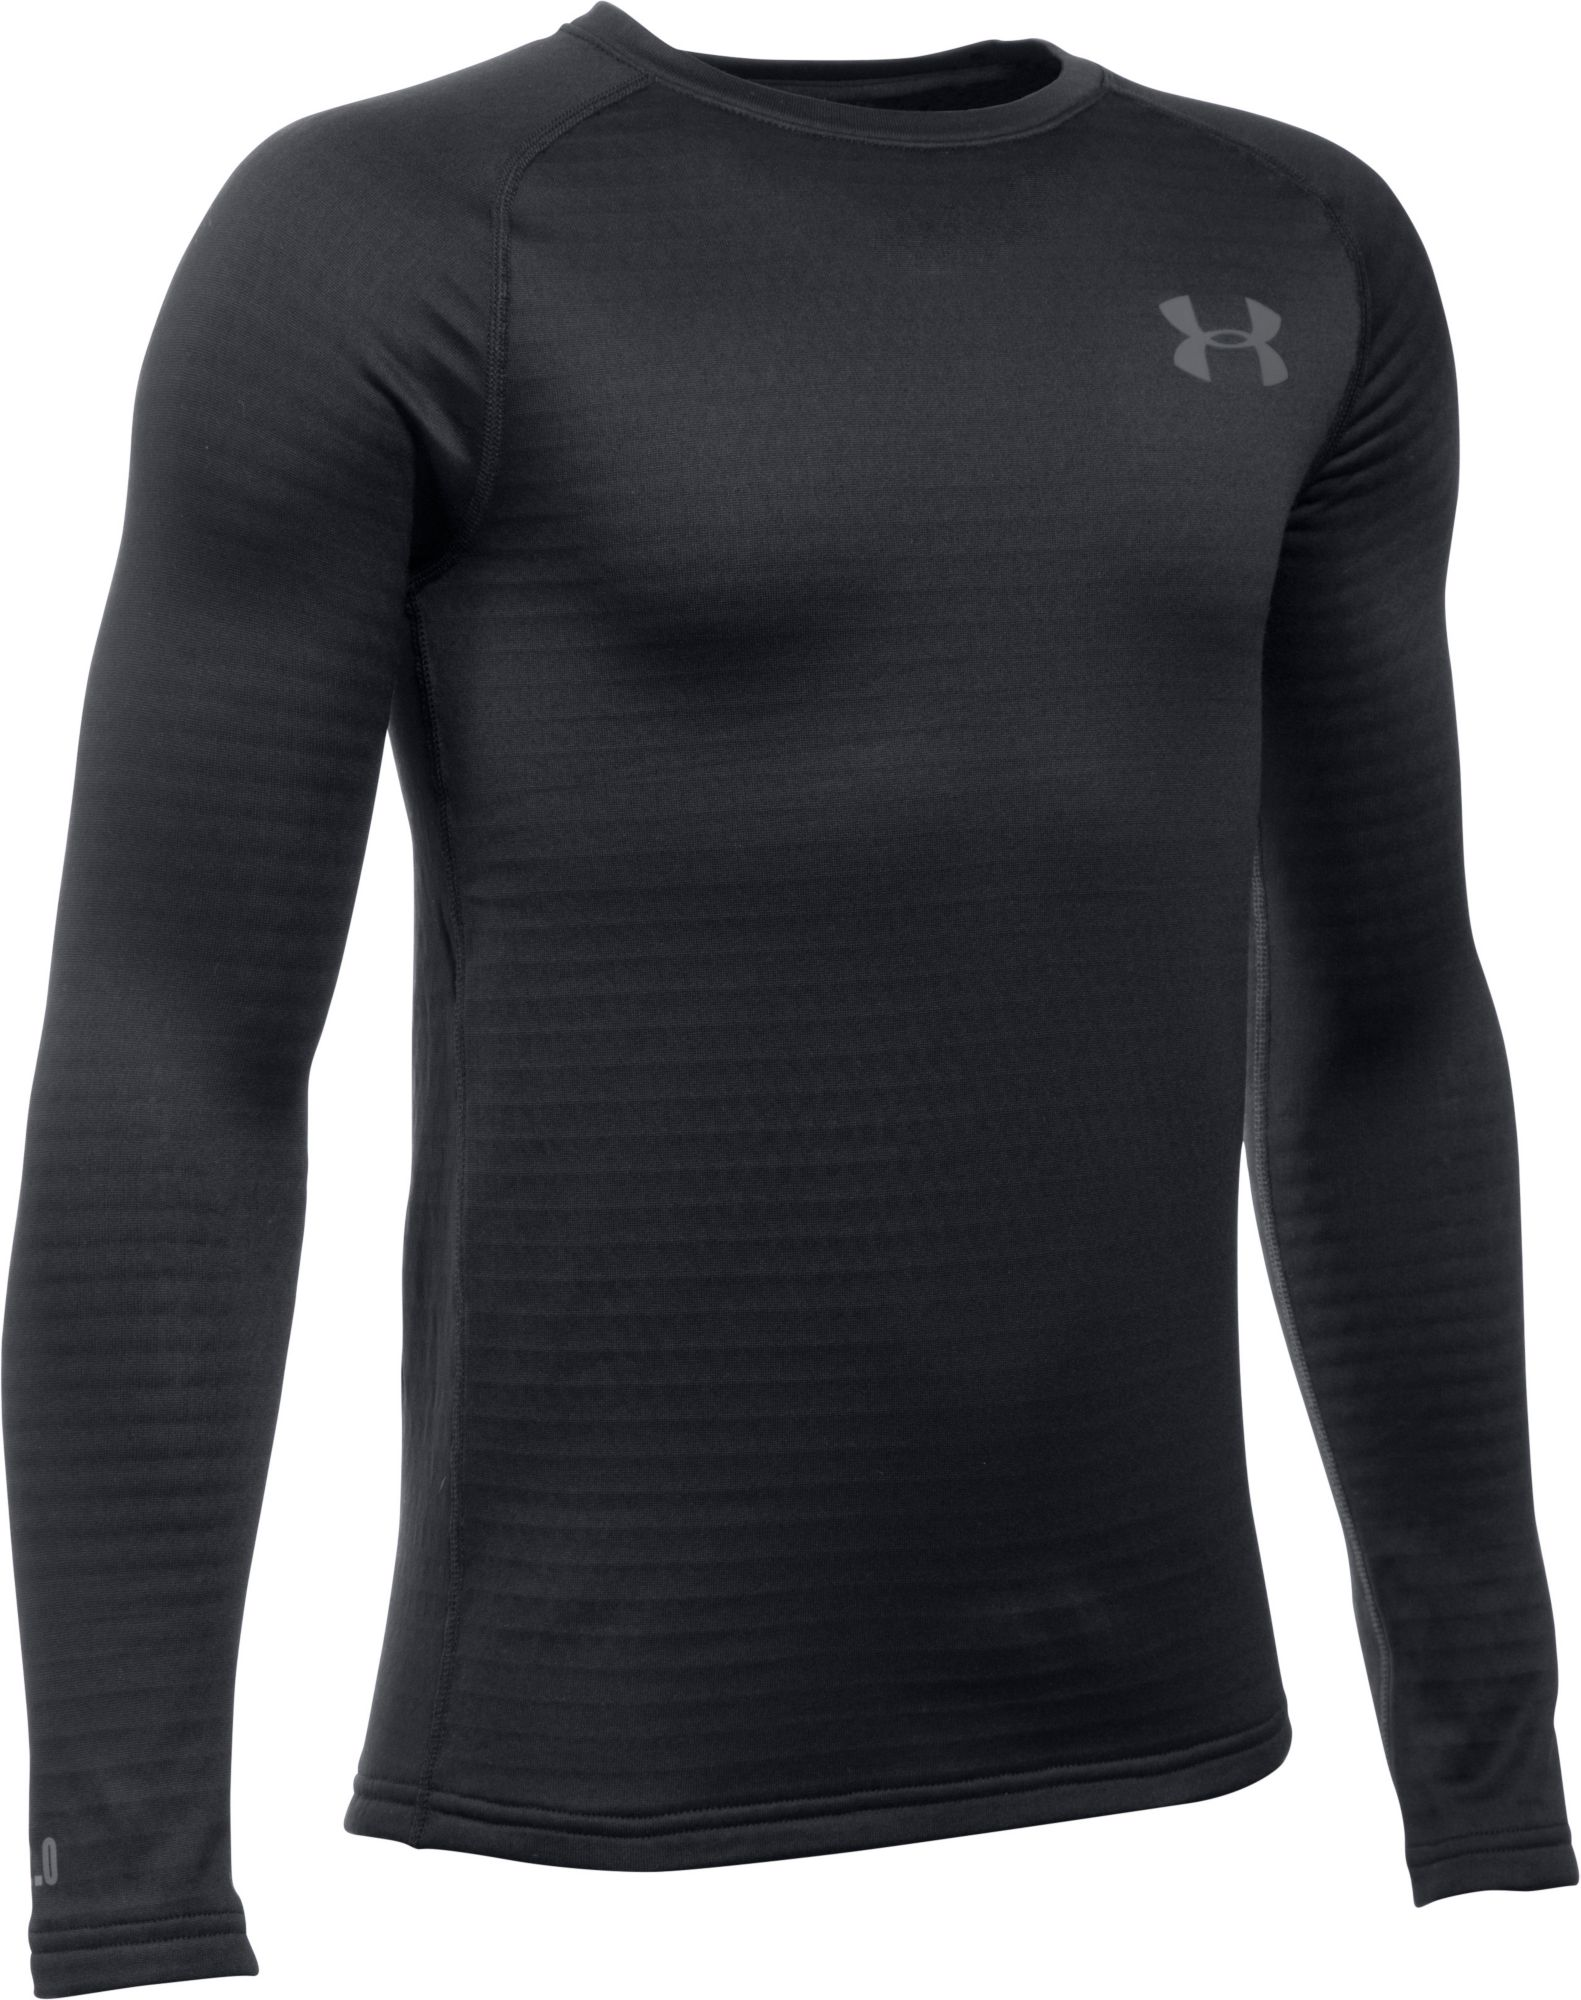 Under Armour Youth Base 2.0 Crew Long Sleeve Shirt, Kids Unisex, Size: Small, Black thumbnail